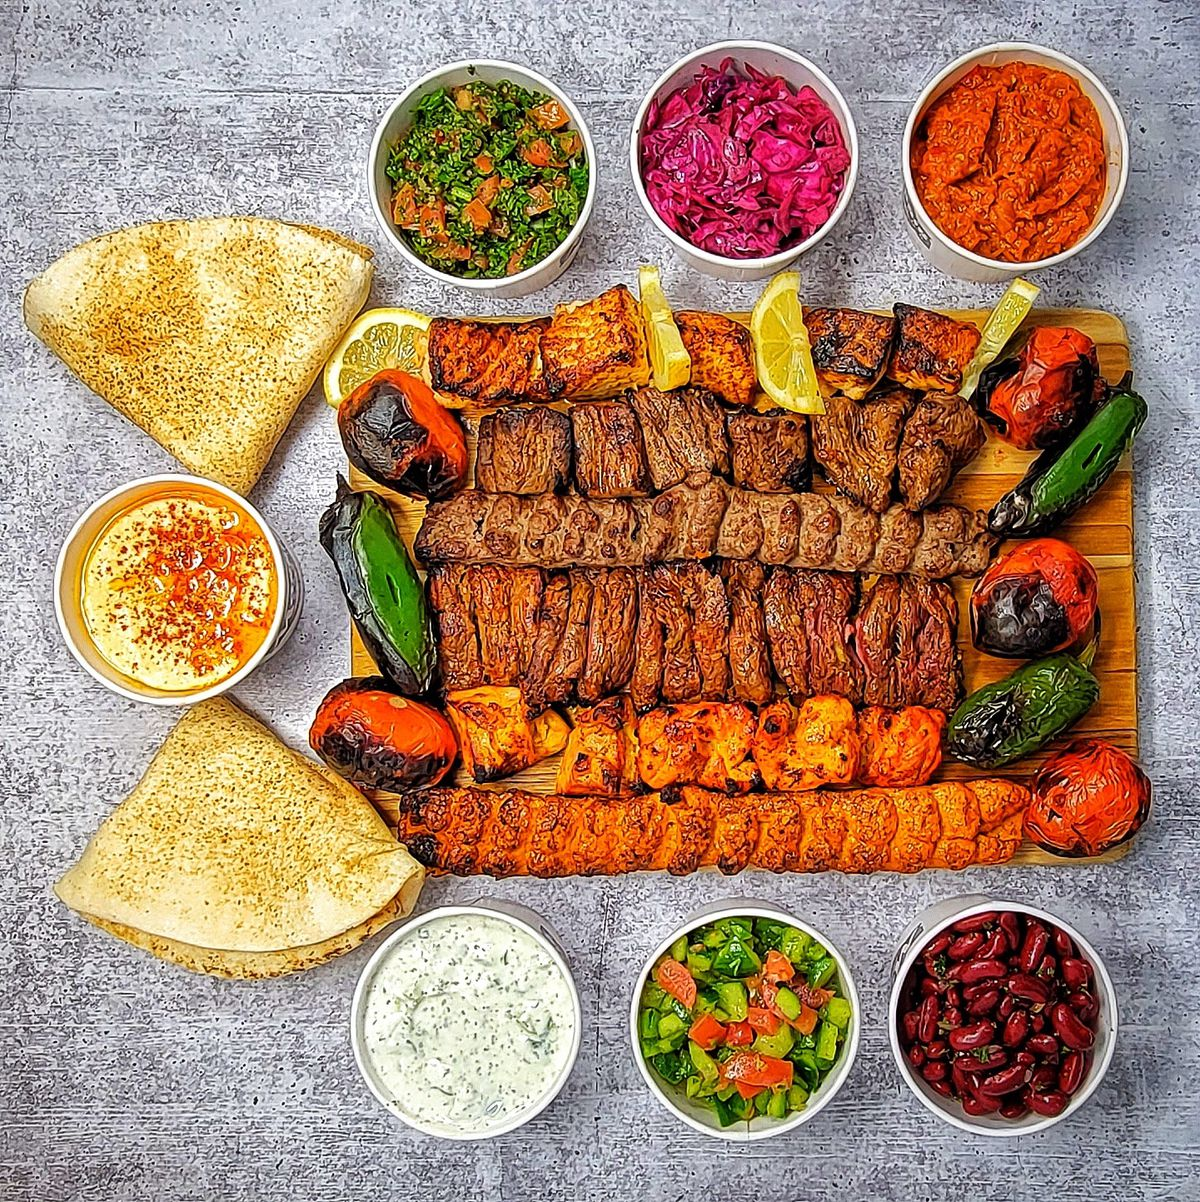 An overhead shot of meat kebabs on a wooden plank, surrounded by side dishes and pita.